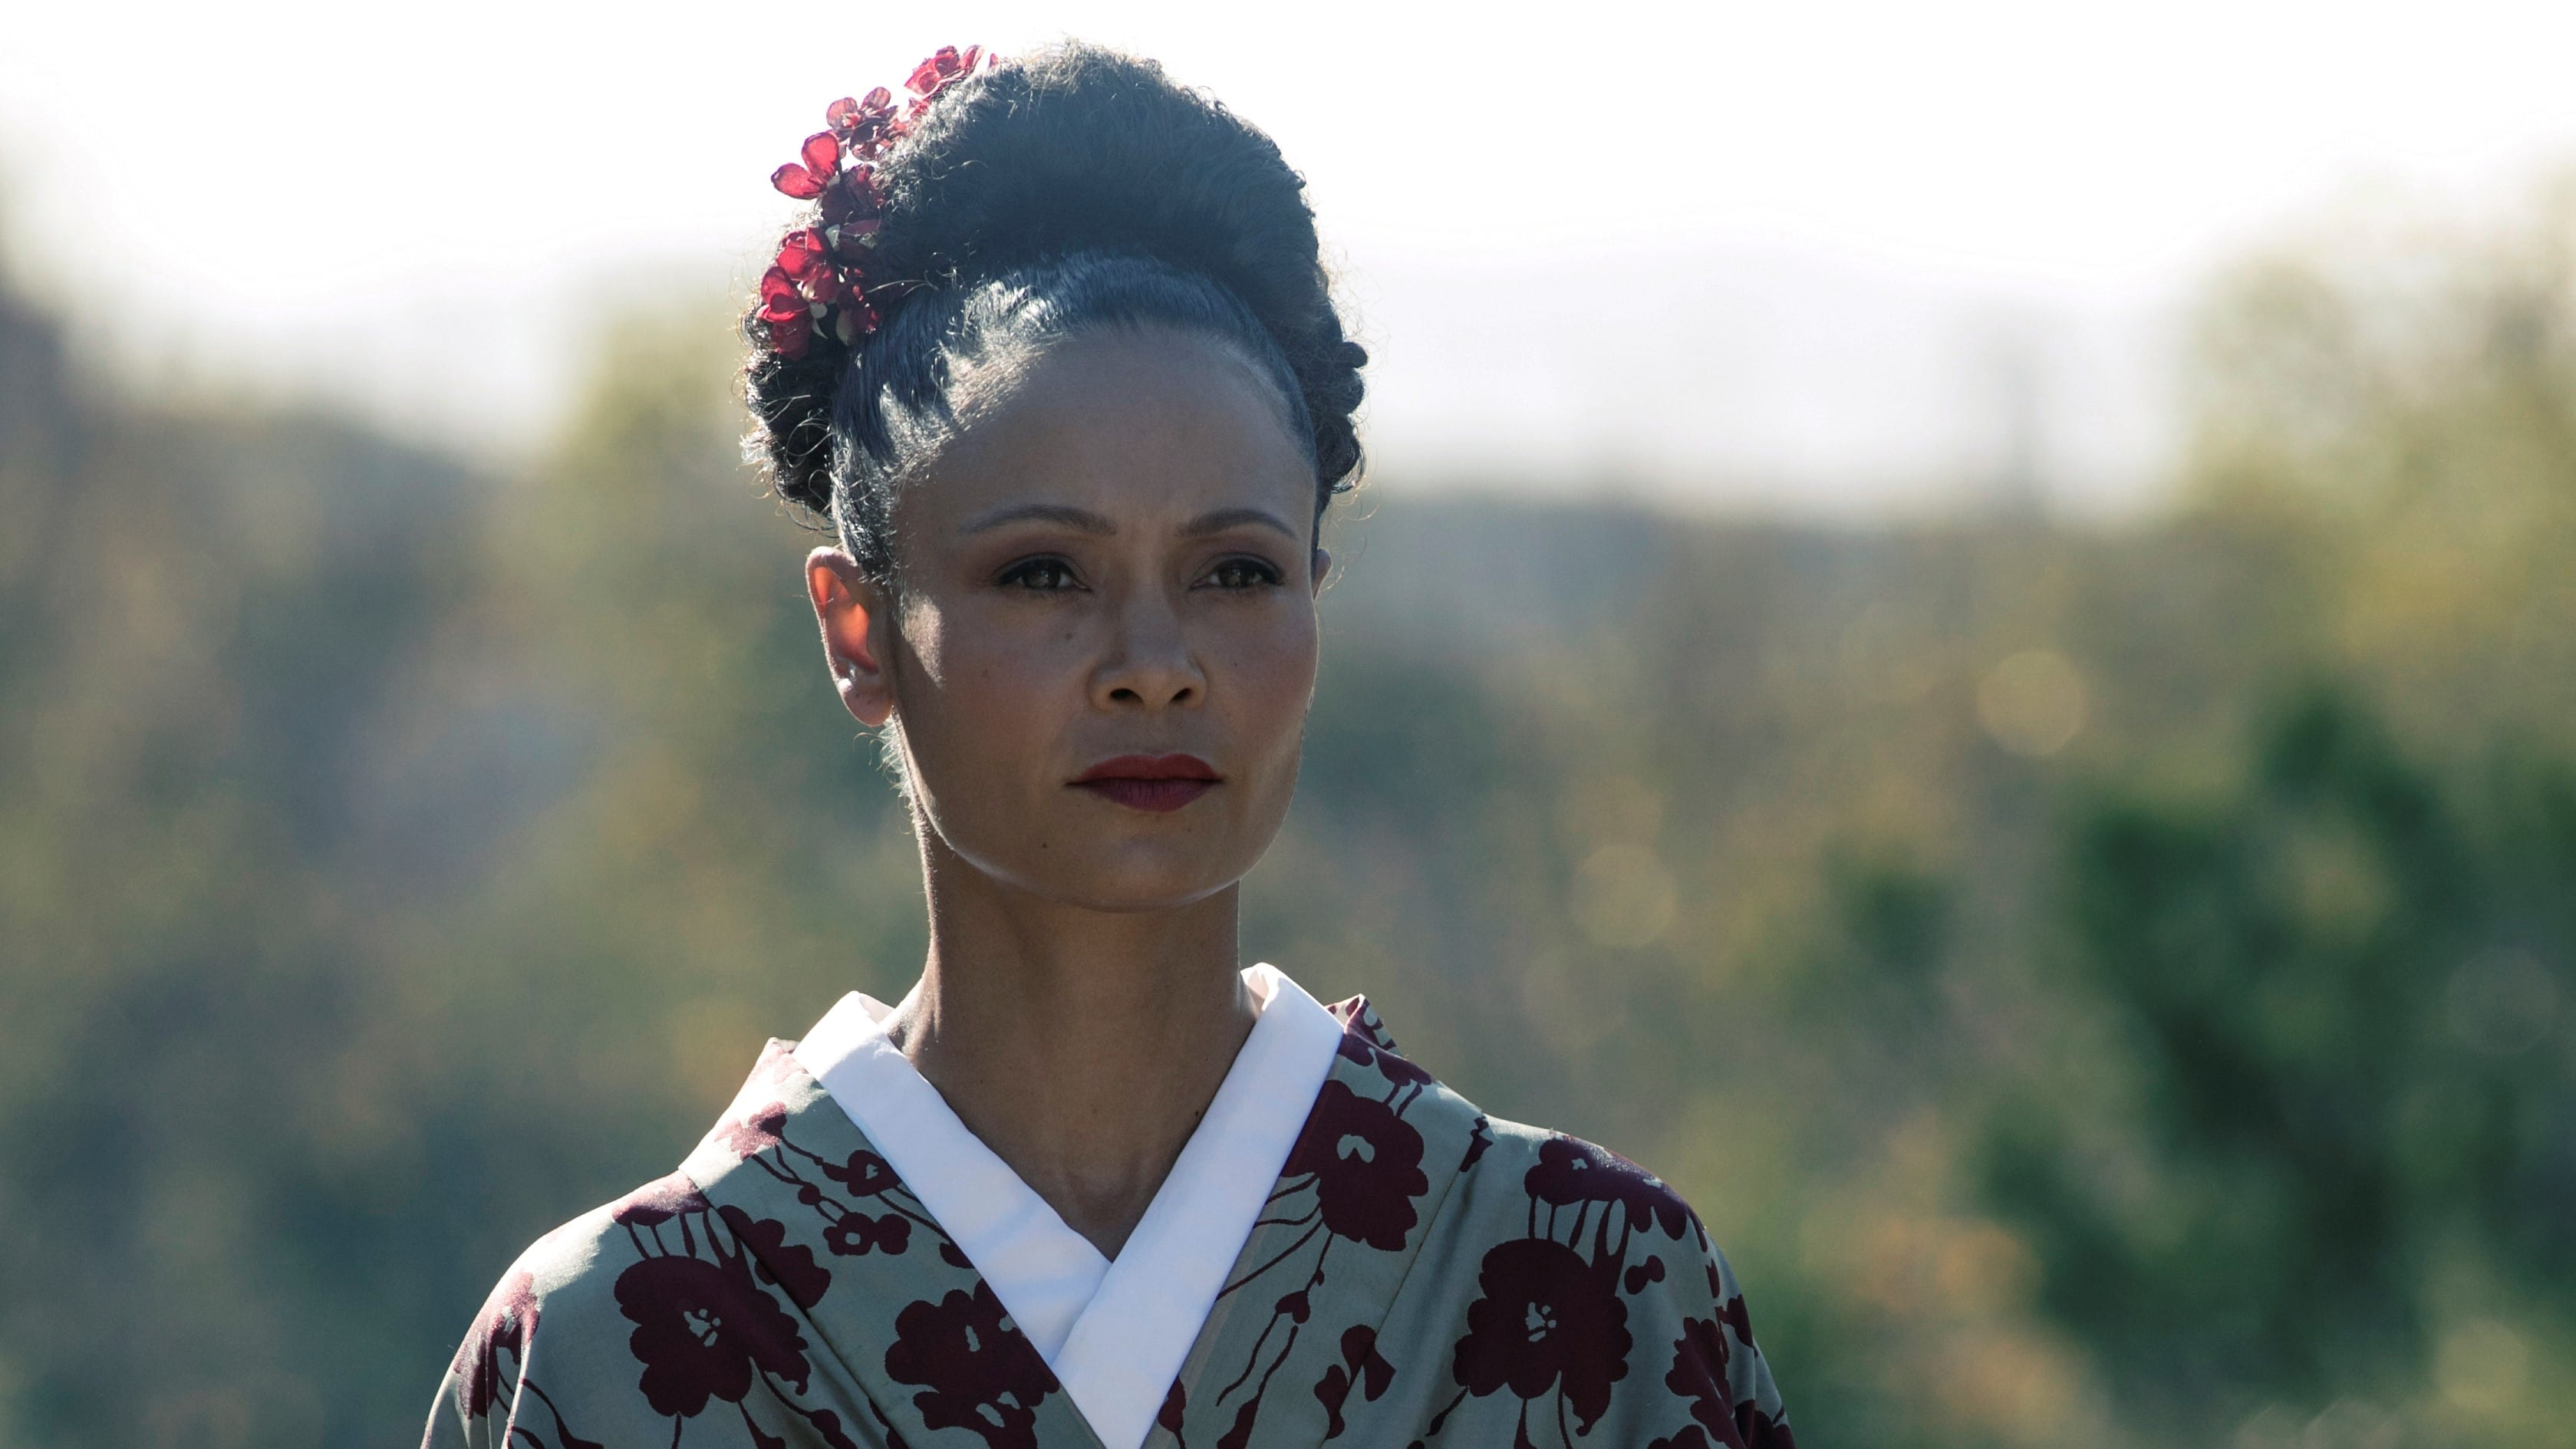 Westworld - Season 2 Episode 5 : Akane No Mai